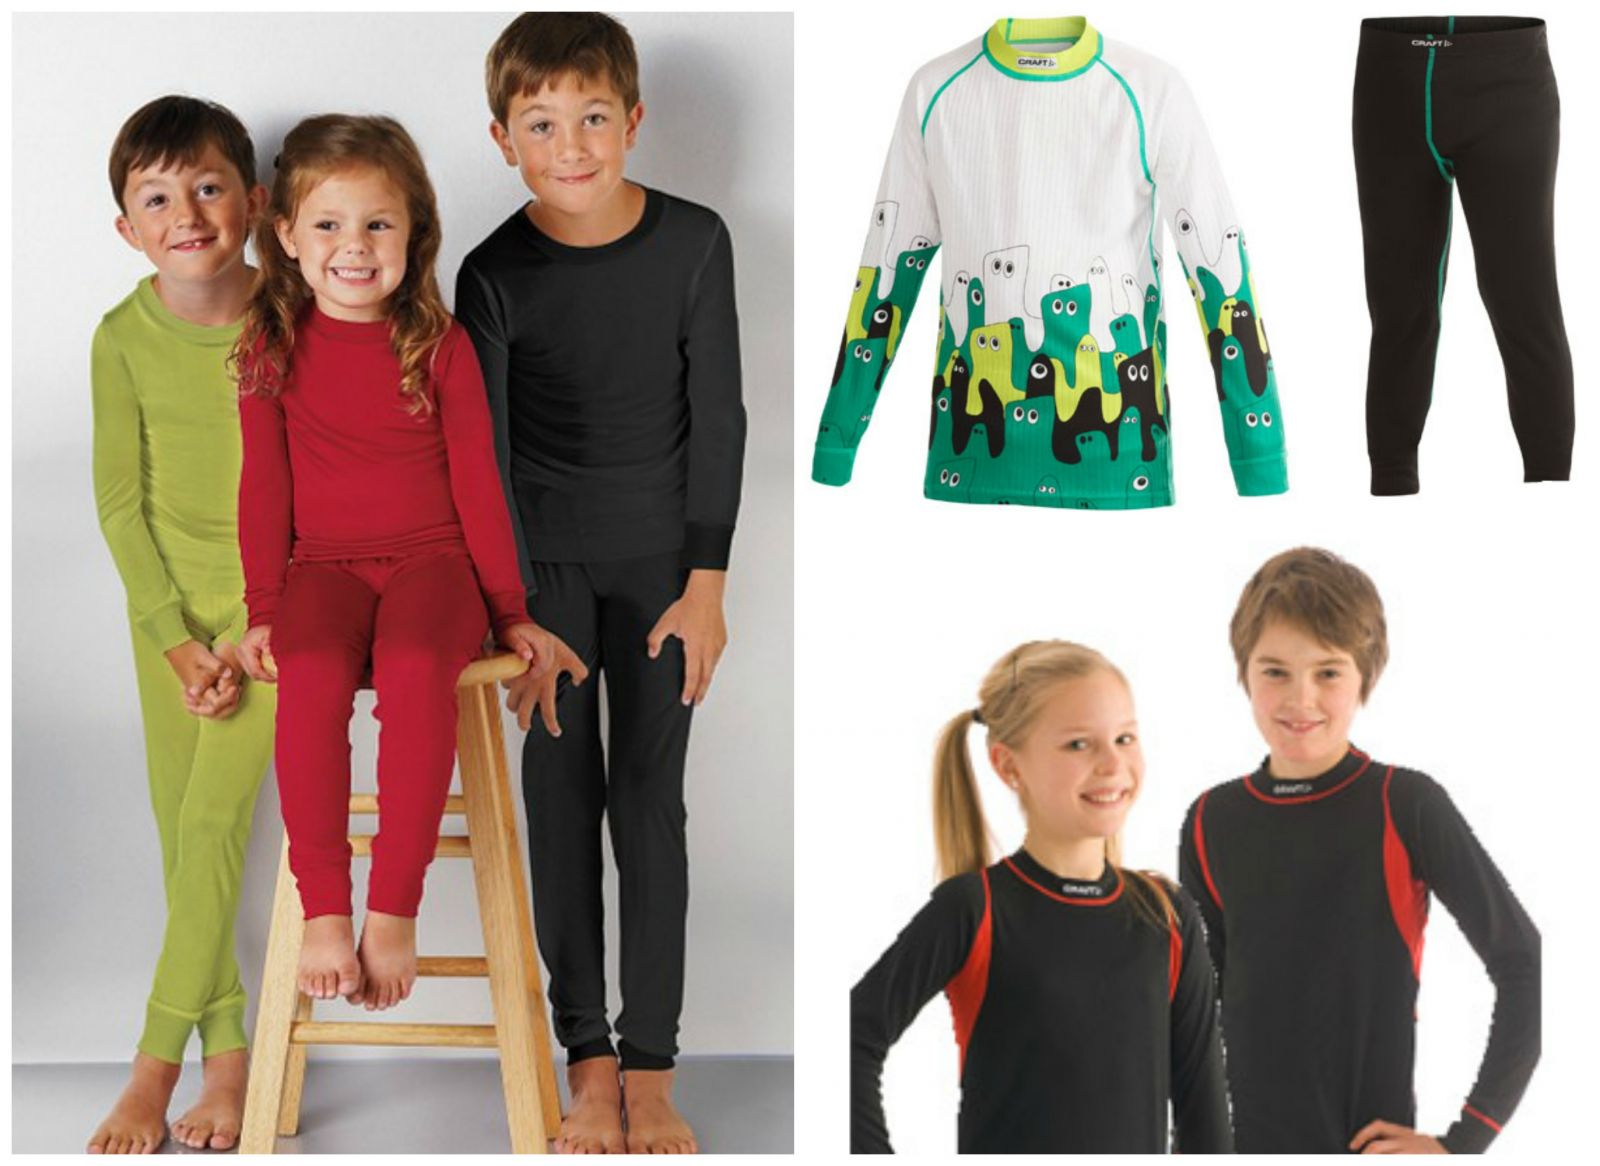 Thermal underwear for children and how to wear it - image №1